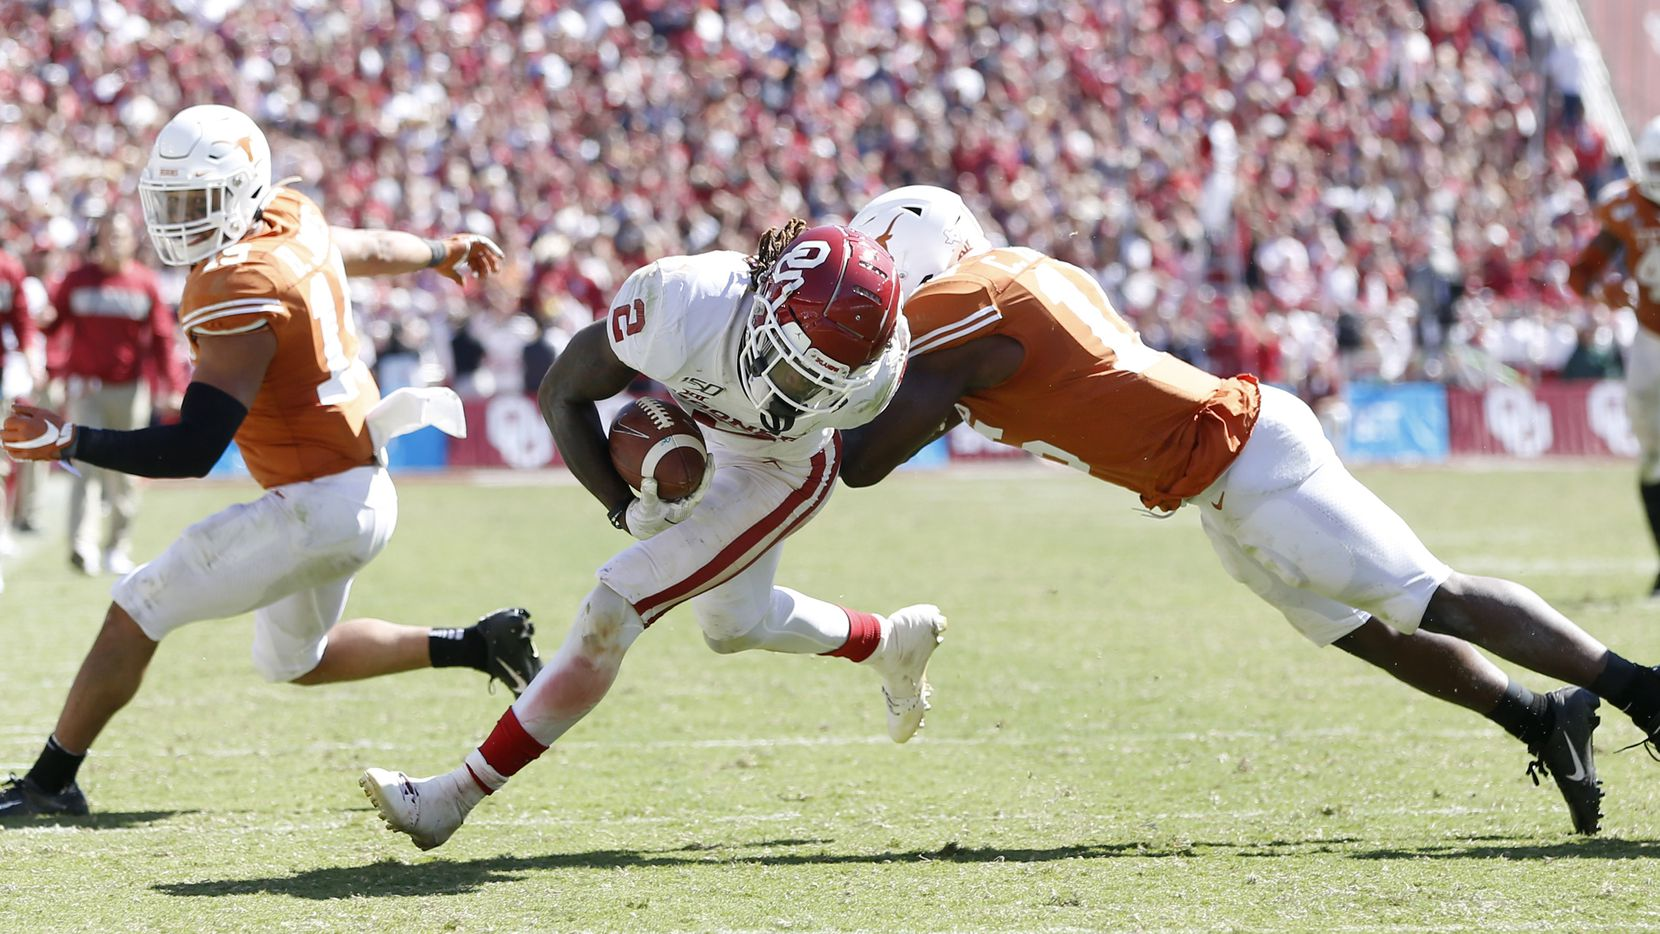 Oklahoma Sooners wide receiver CeeDee Lamb (2) breaks away from Texas Longhorns defensive back Brandon Jones (19) and Texas Longhorns defensive back Chris Brown (15) before scoring a touchdown during the second half of play in the Red River Showdown at the Cotton Bowl in Dallas on Saturday, October 12, 2019. Oklahoma Sooners defeated Texas Longhorns 34-27.